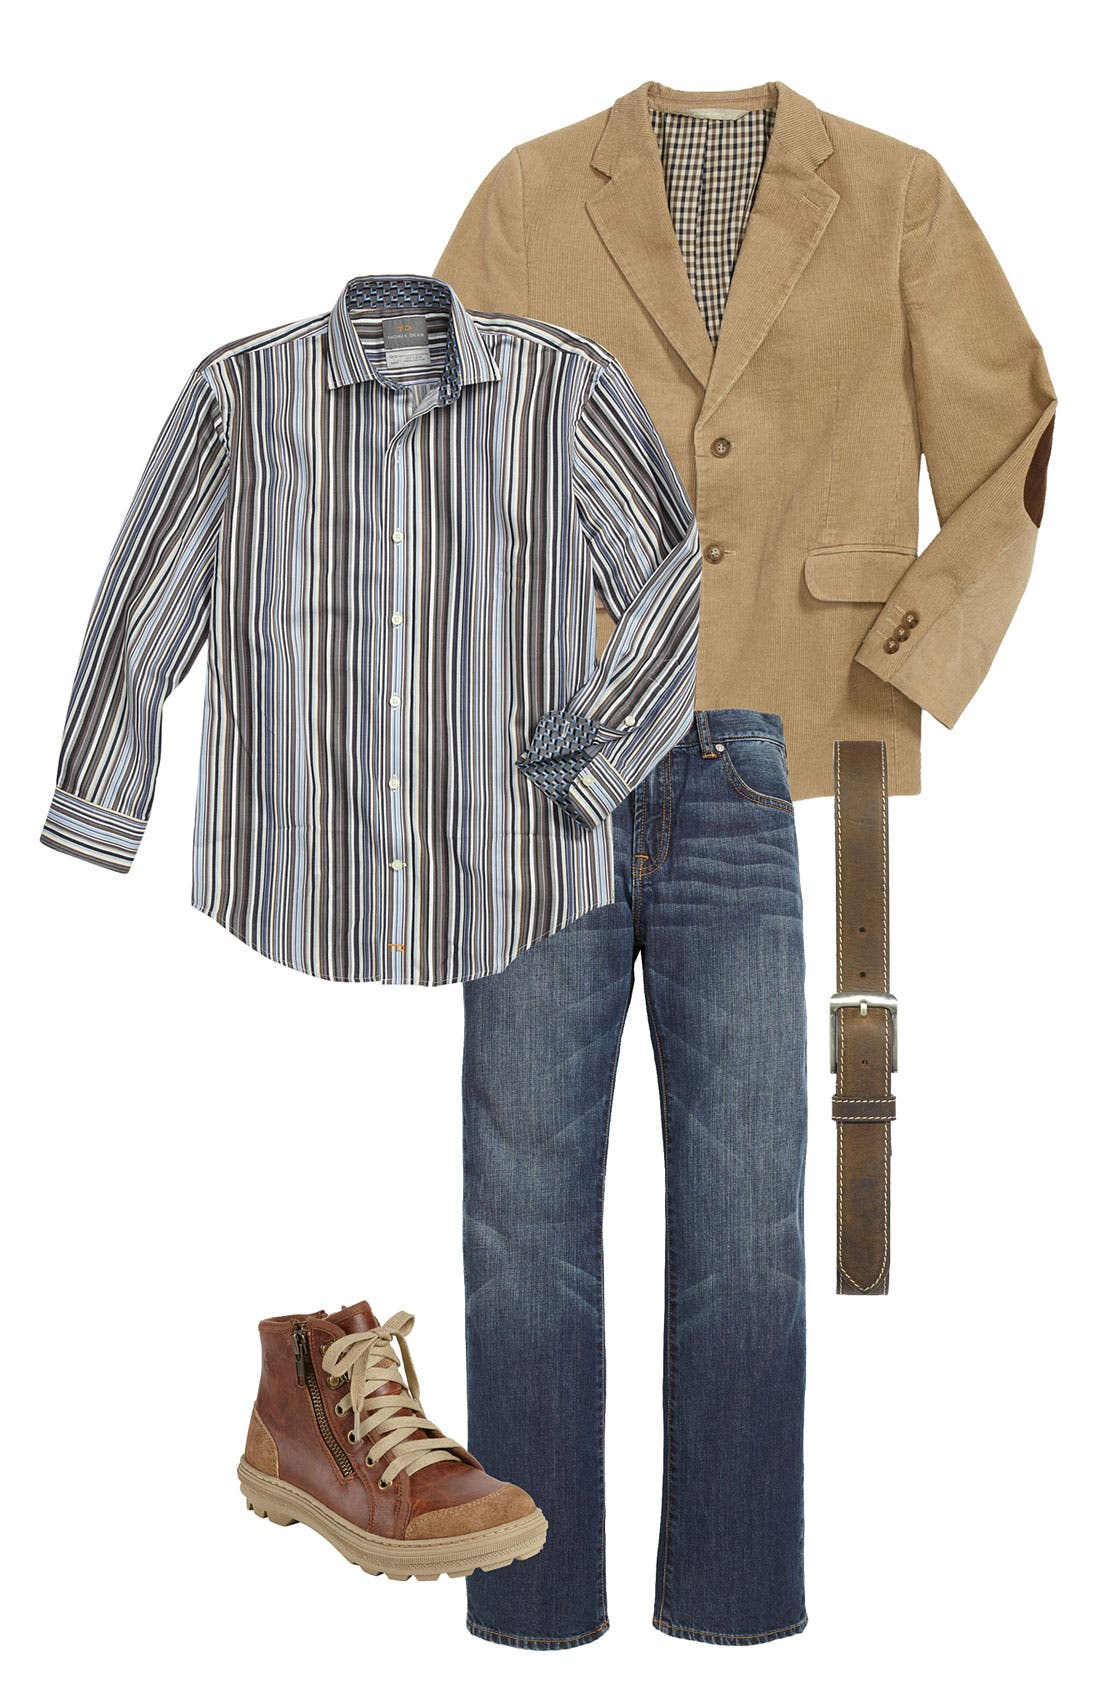 Alternate Image 1 Selected - Nordstrom Blazer, Thomas Dean Dress Shirt & Cole Haan Boot (Big Boys)